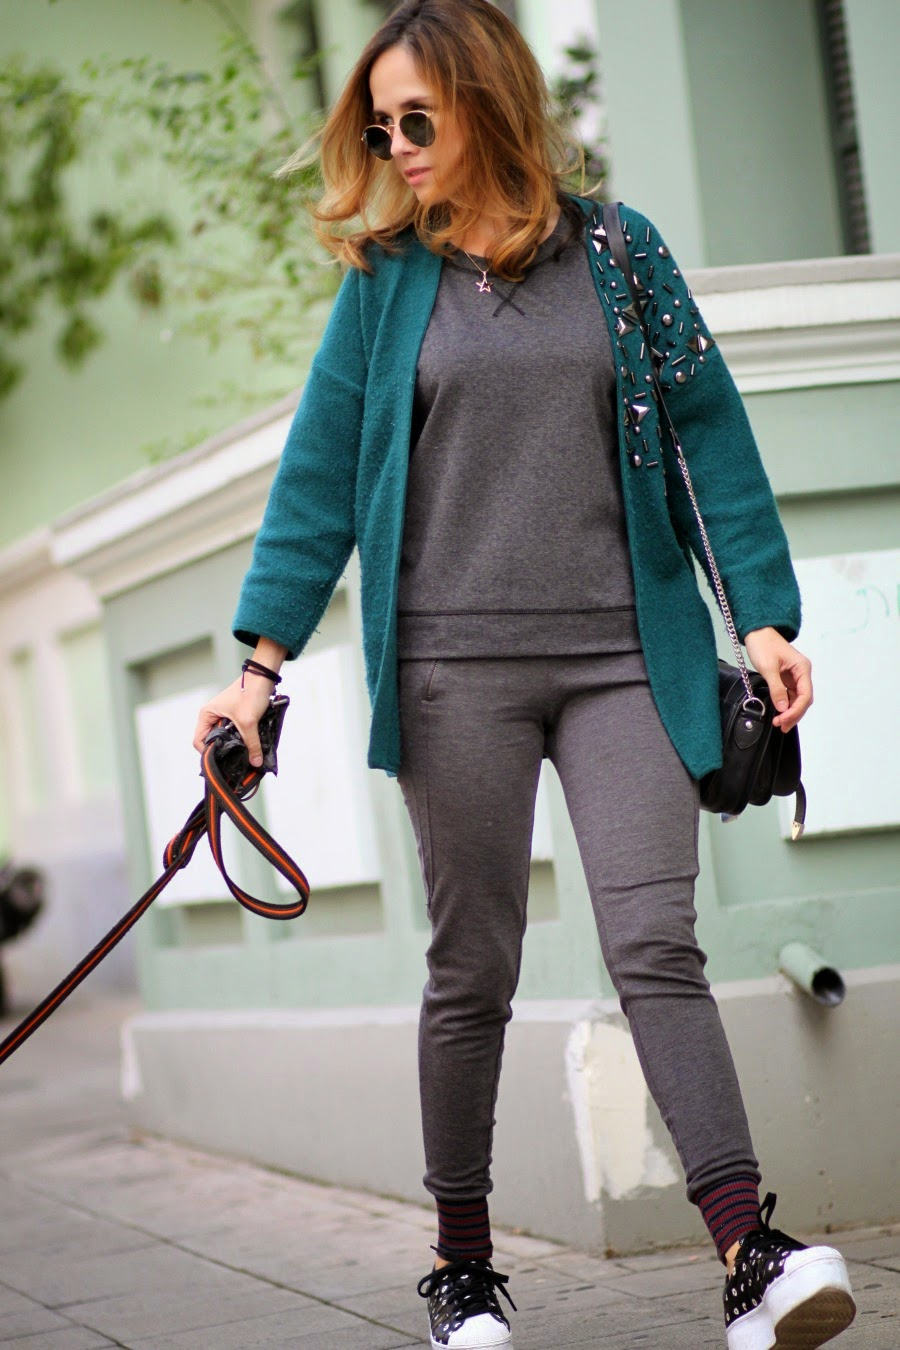 h&mcardigan,zaraleggings,irobag,adidassneakers